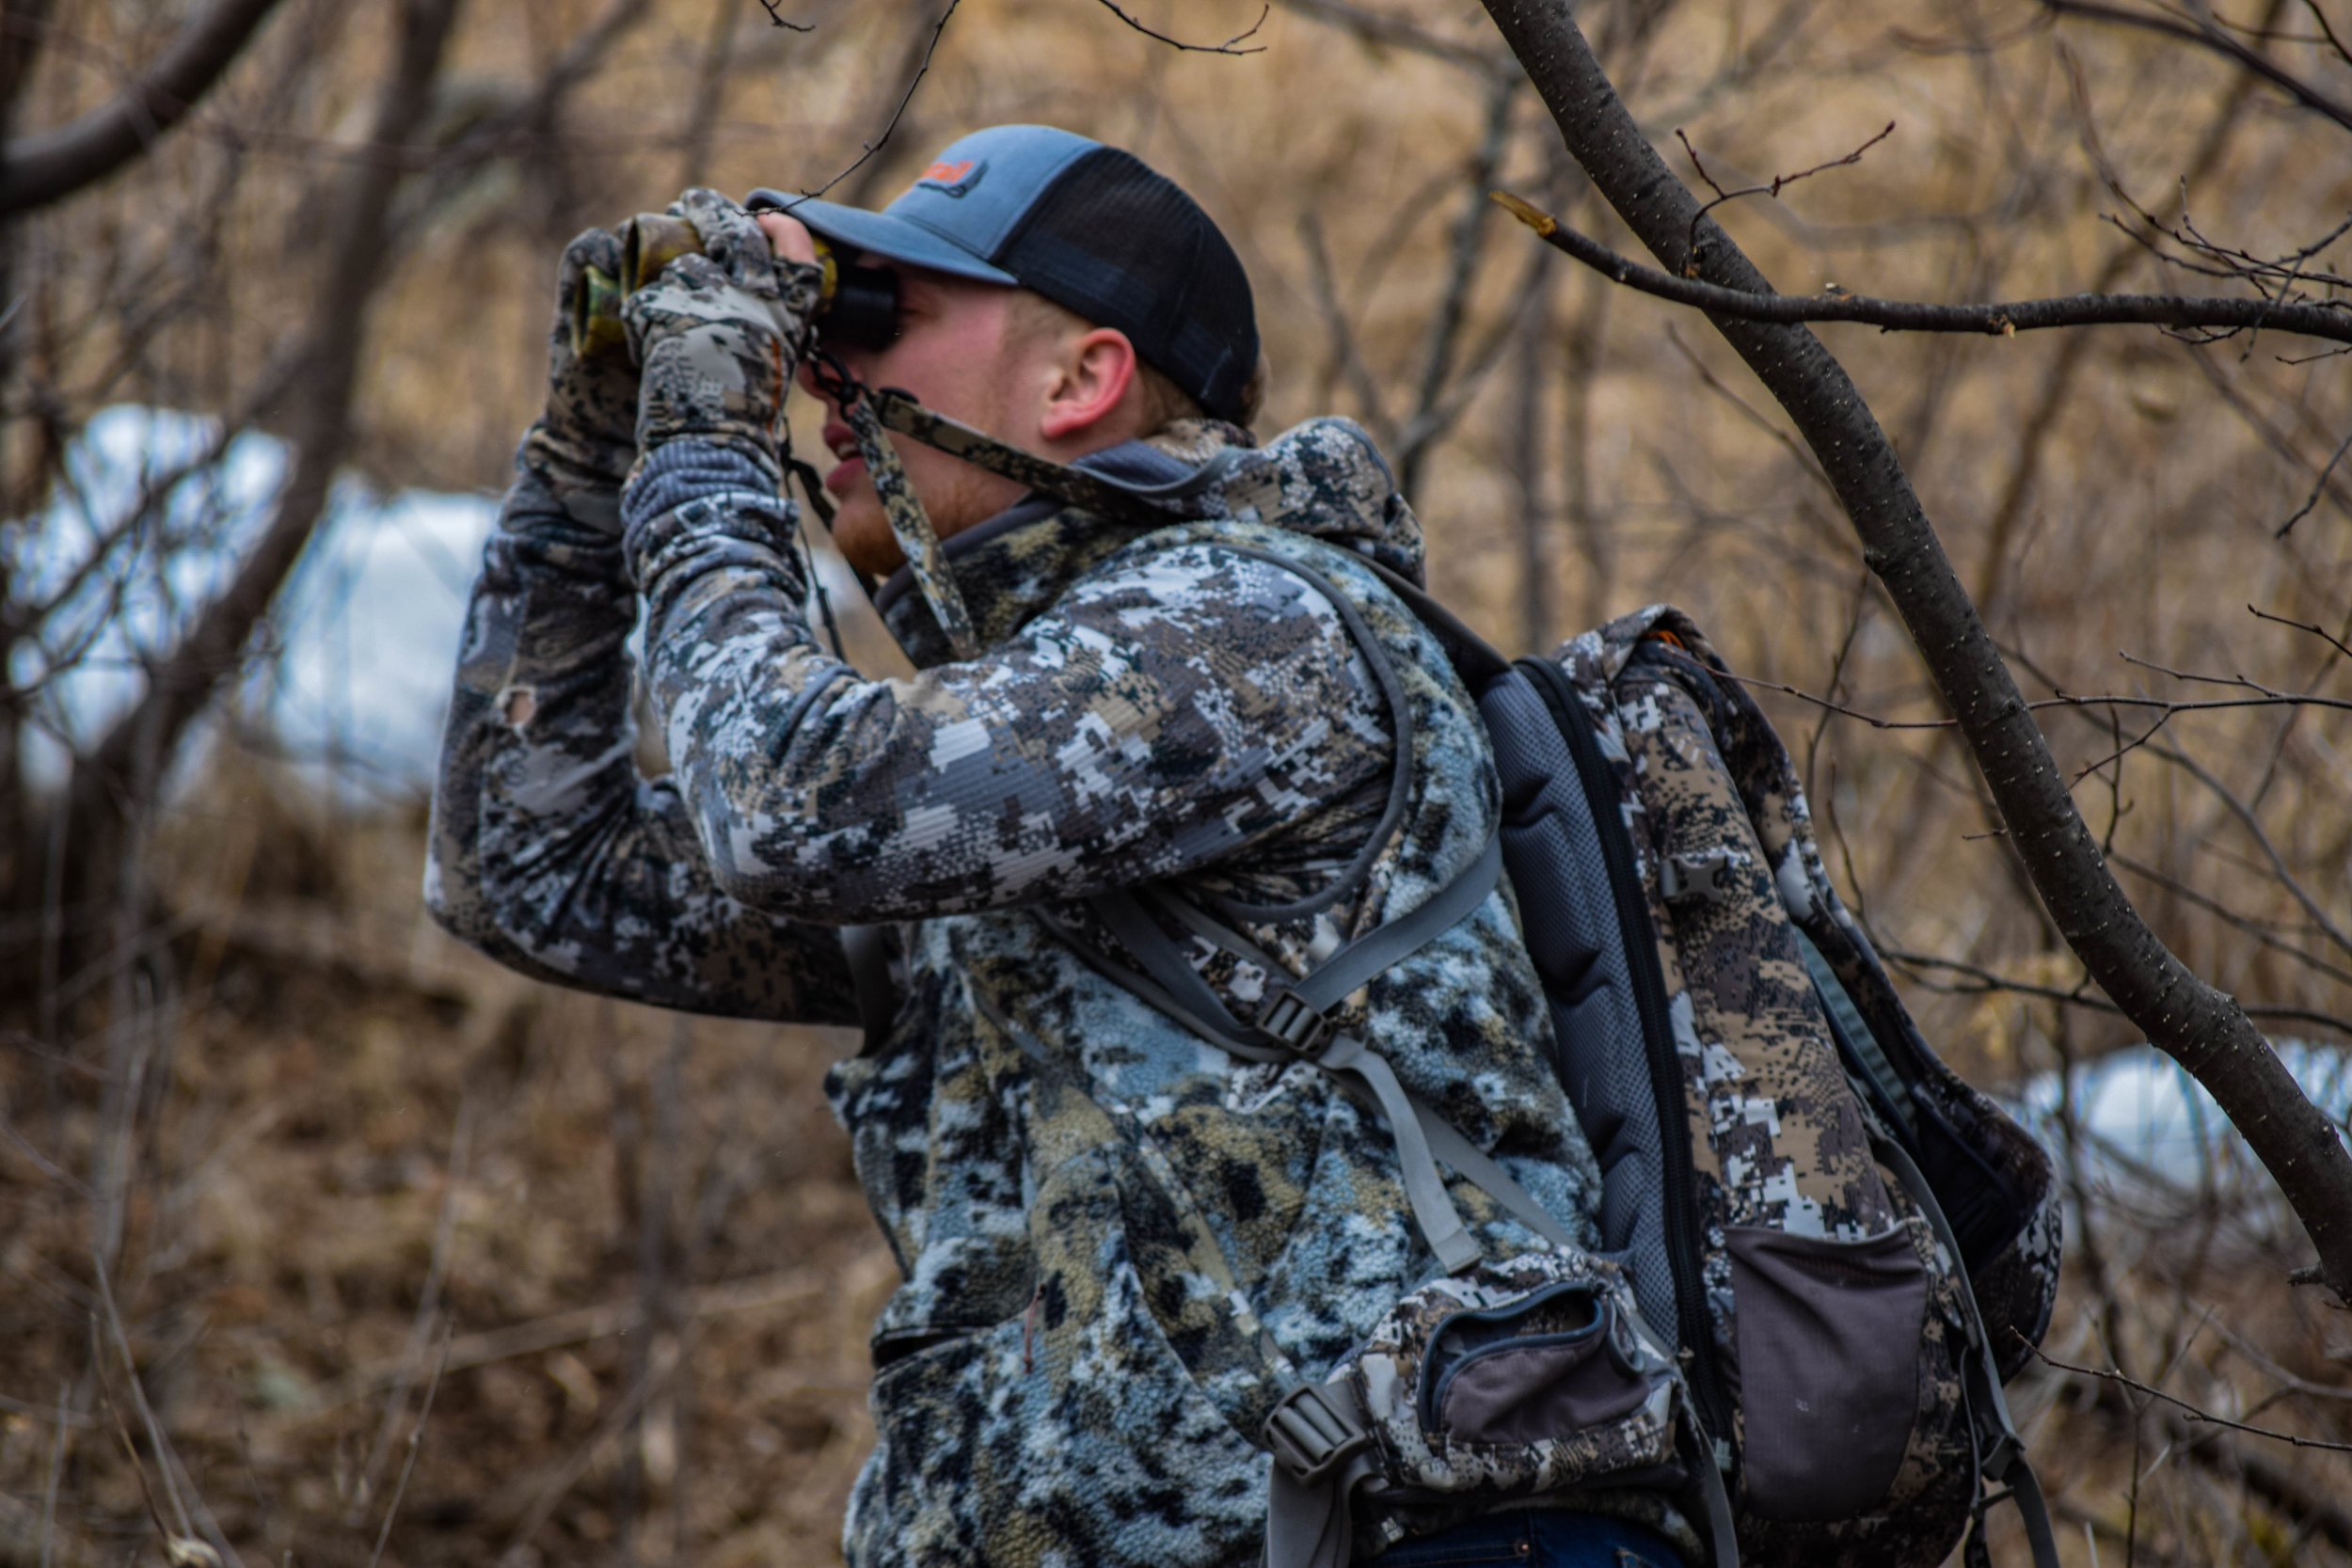 Binoculars are an important part of shed hunting.